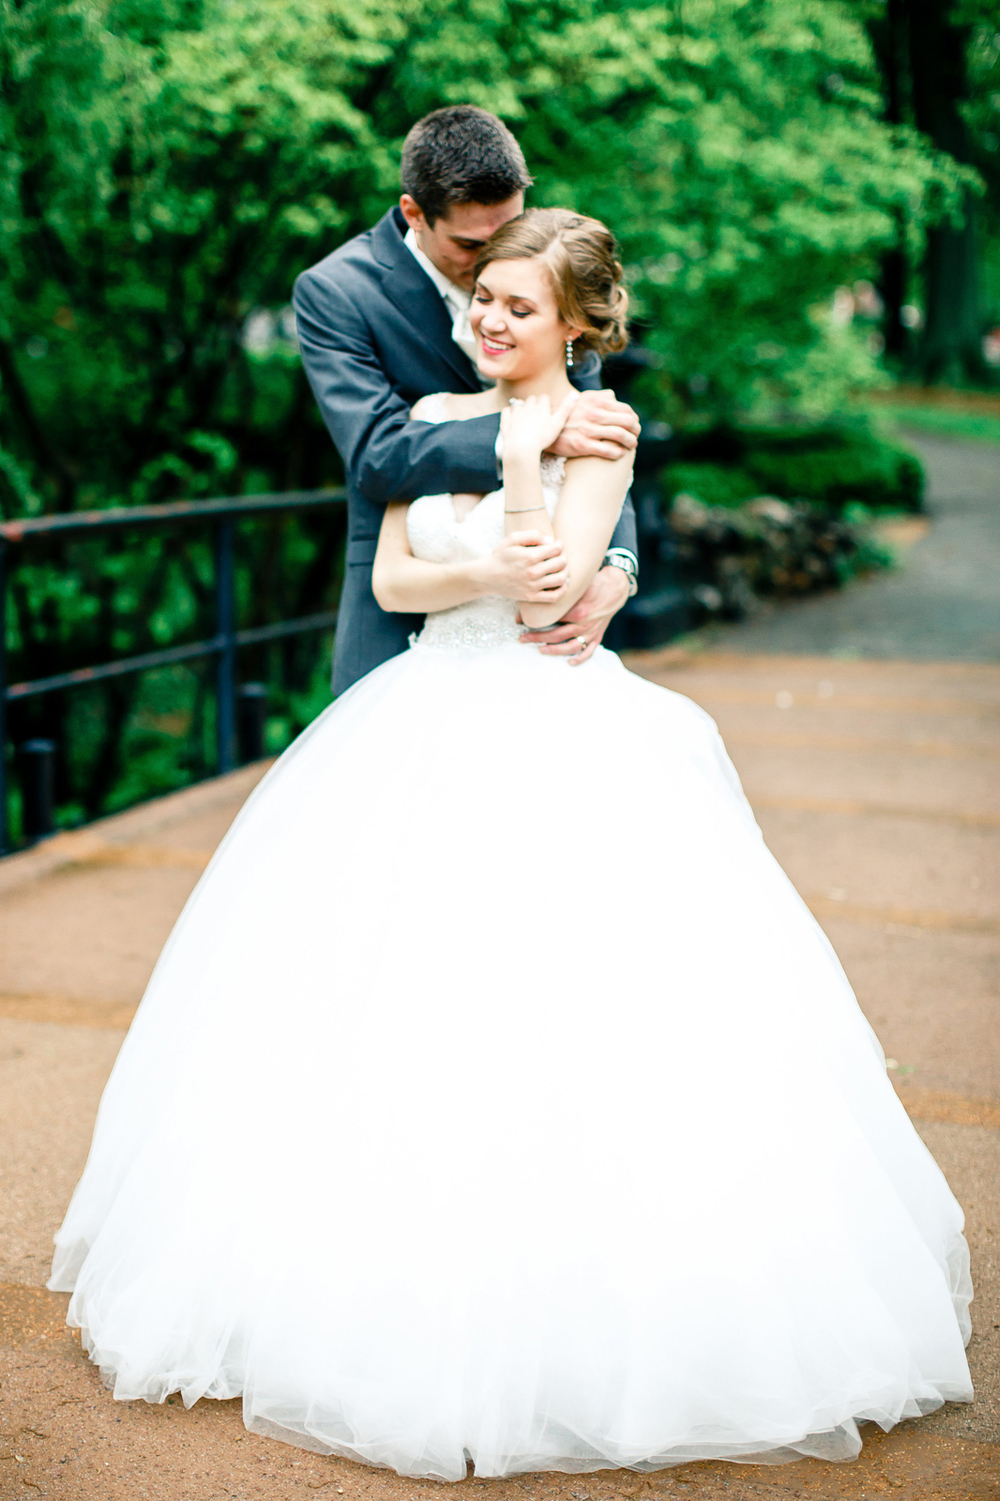 Bridal Portraits Lafayette Square Park Bride Groom St Louis Wedding Photographer Oldani Photography 3.jpg